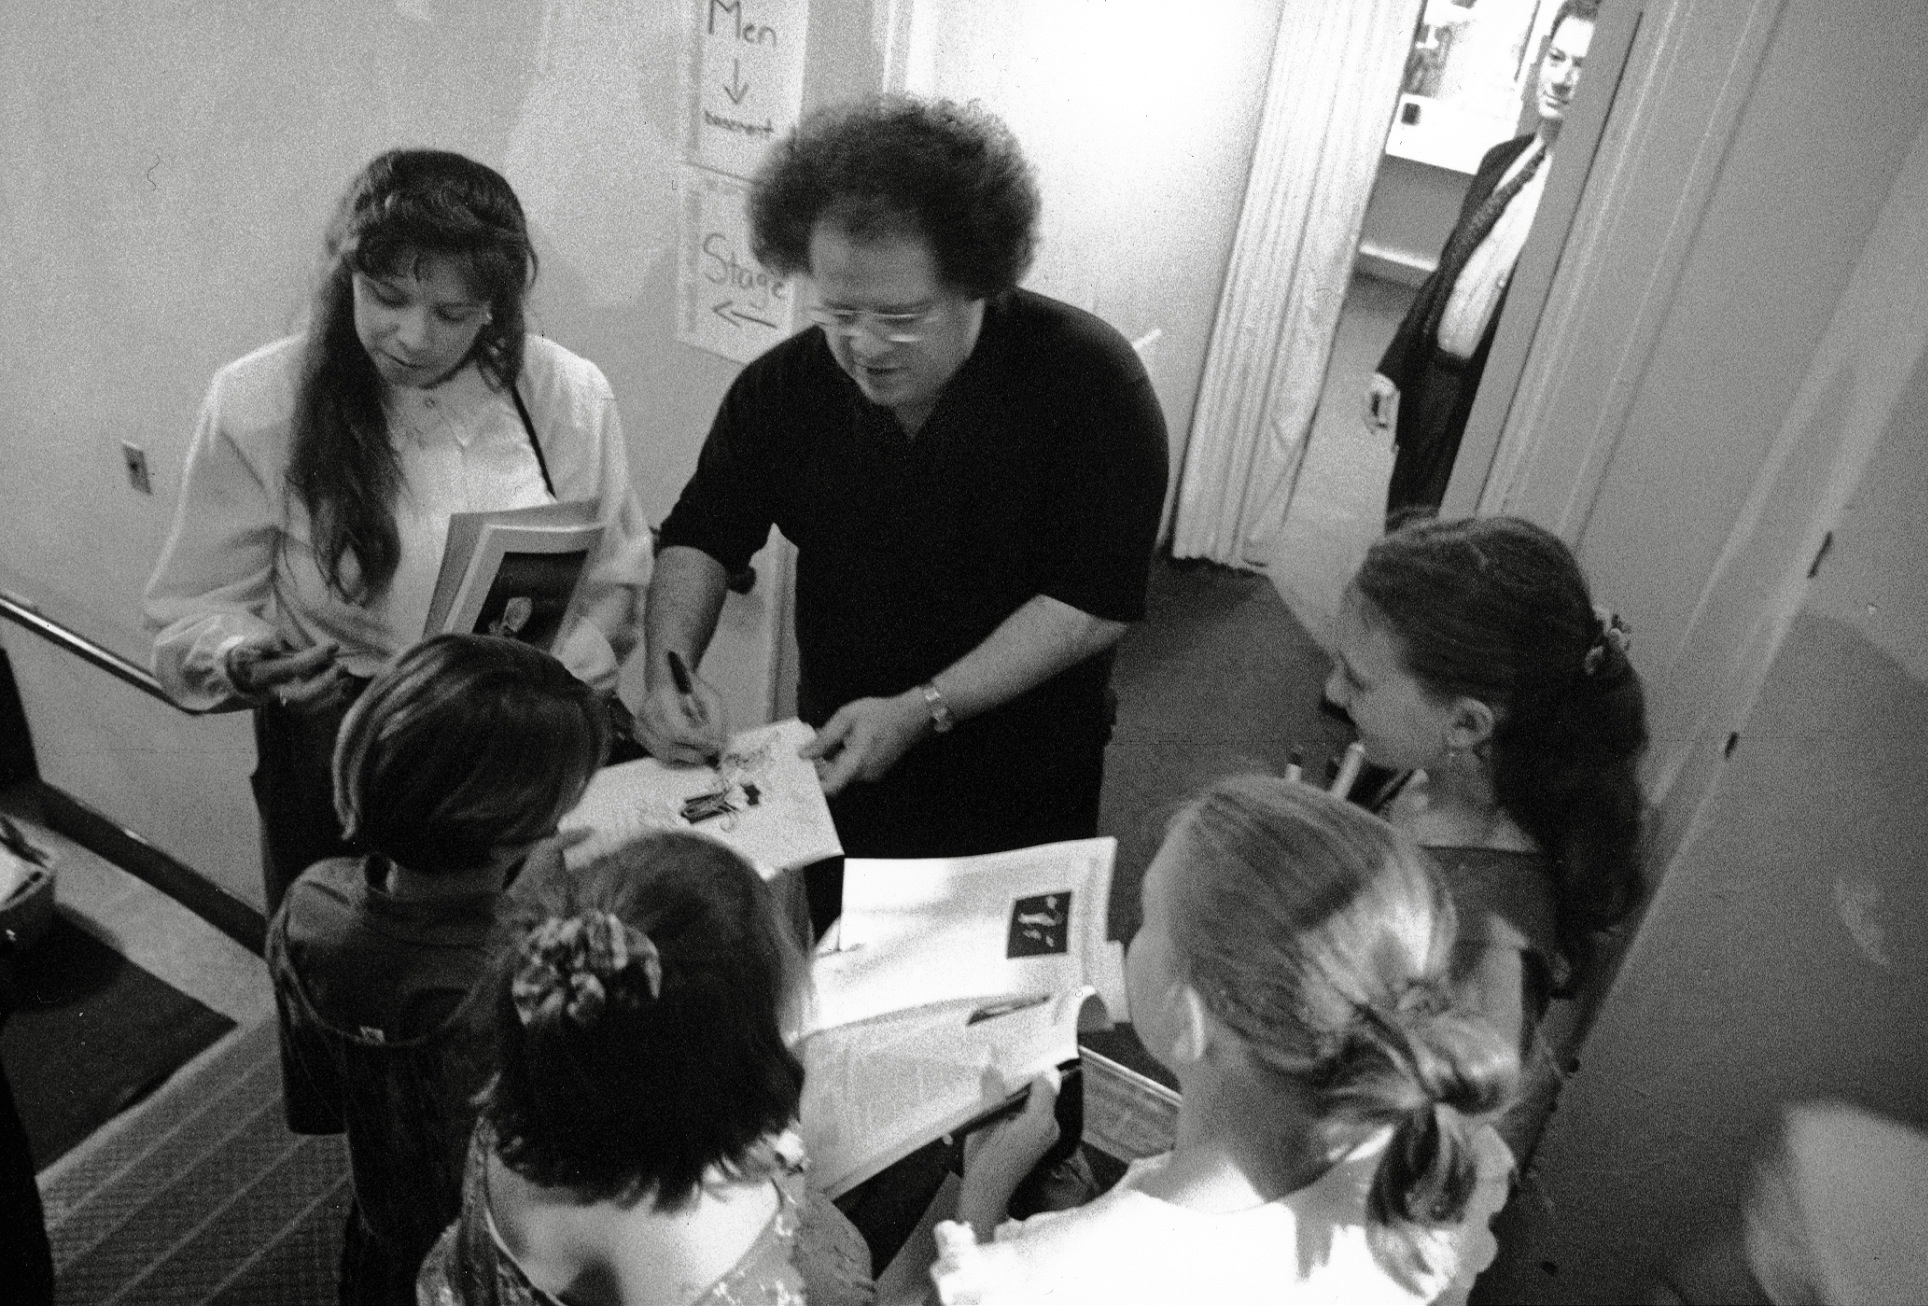 James Levine signs autographs after the 100th May Festival, 1993 image